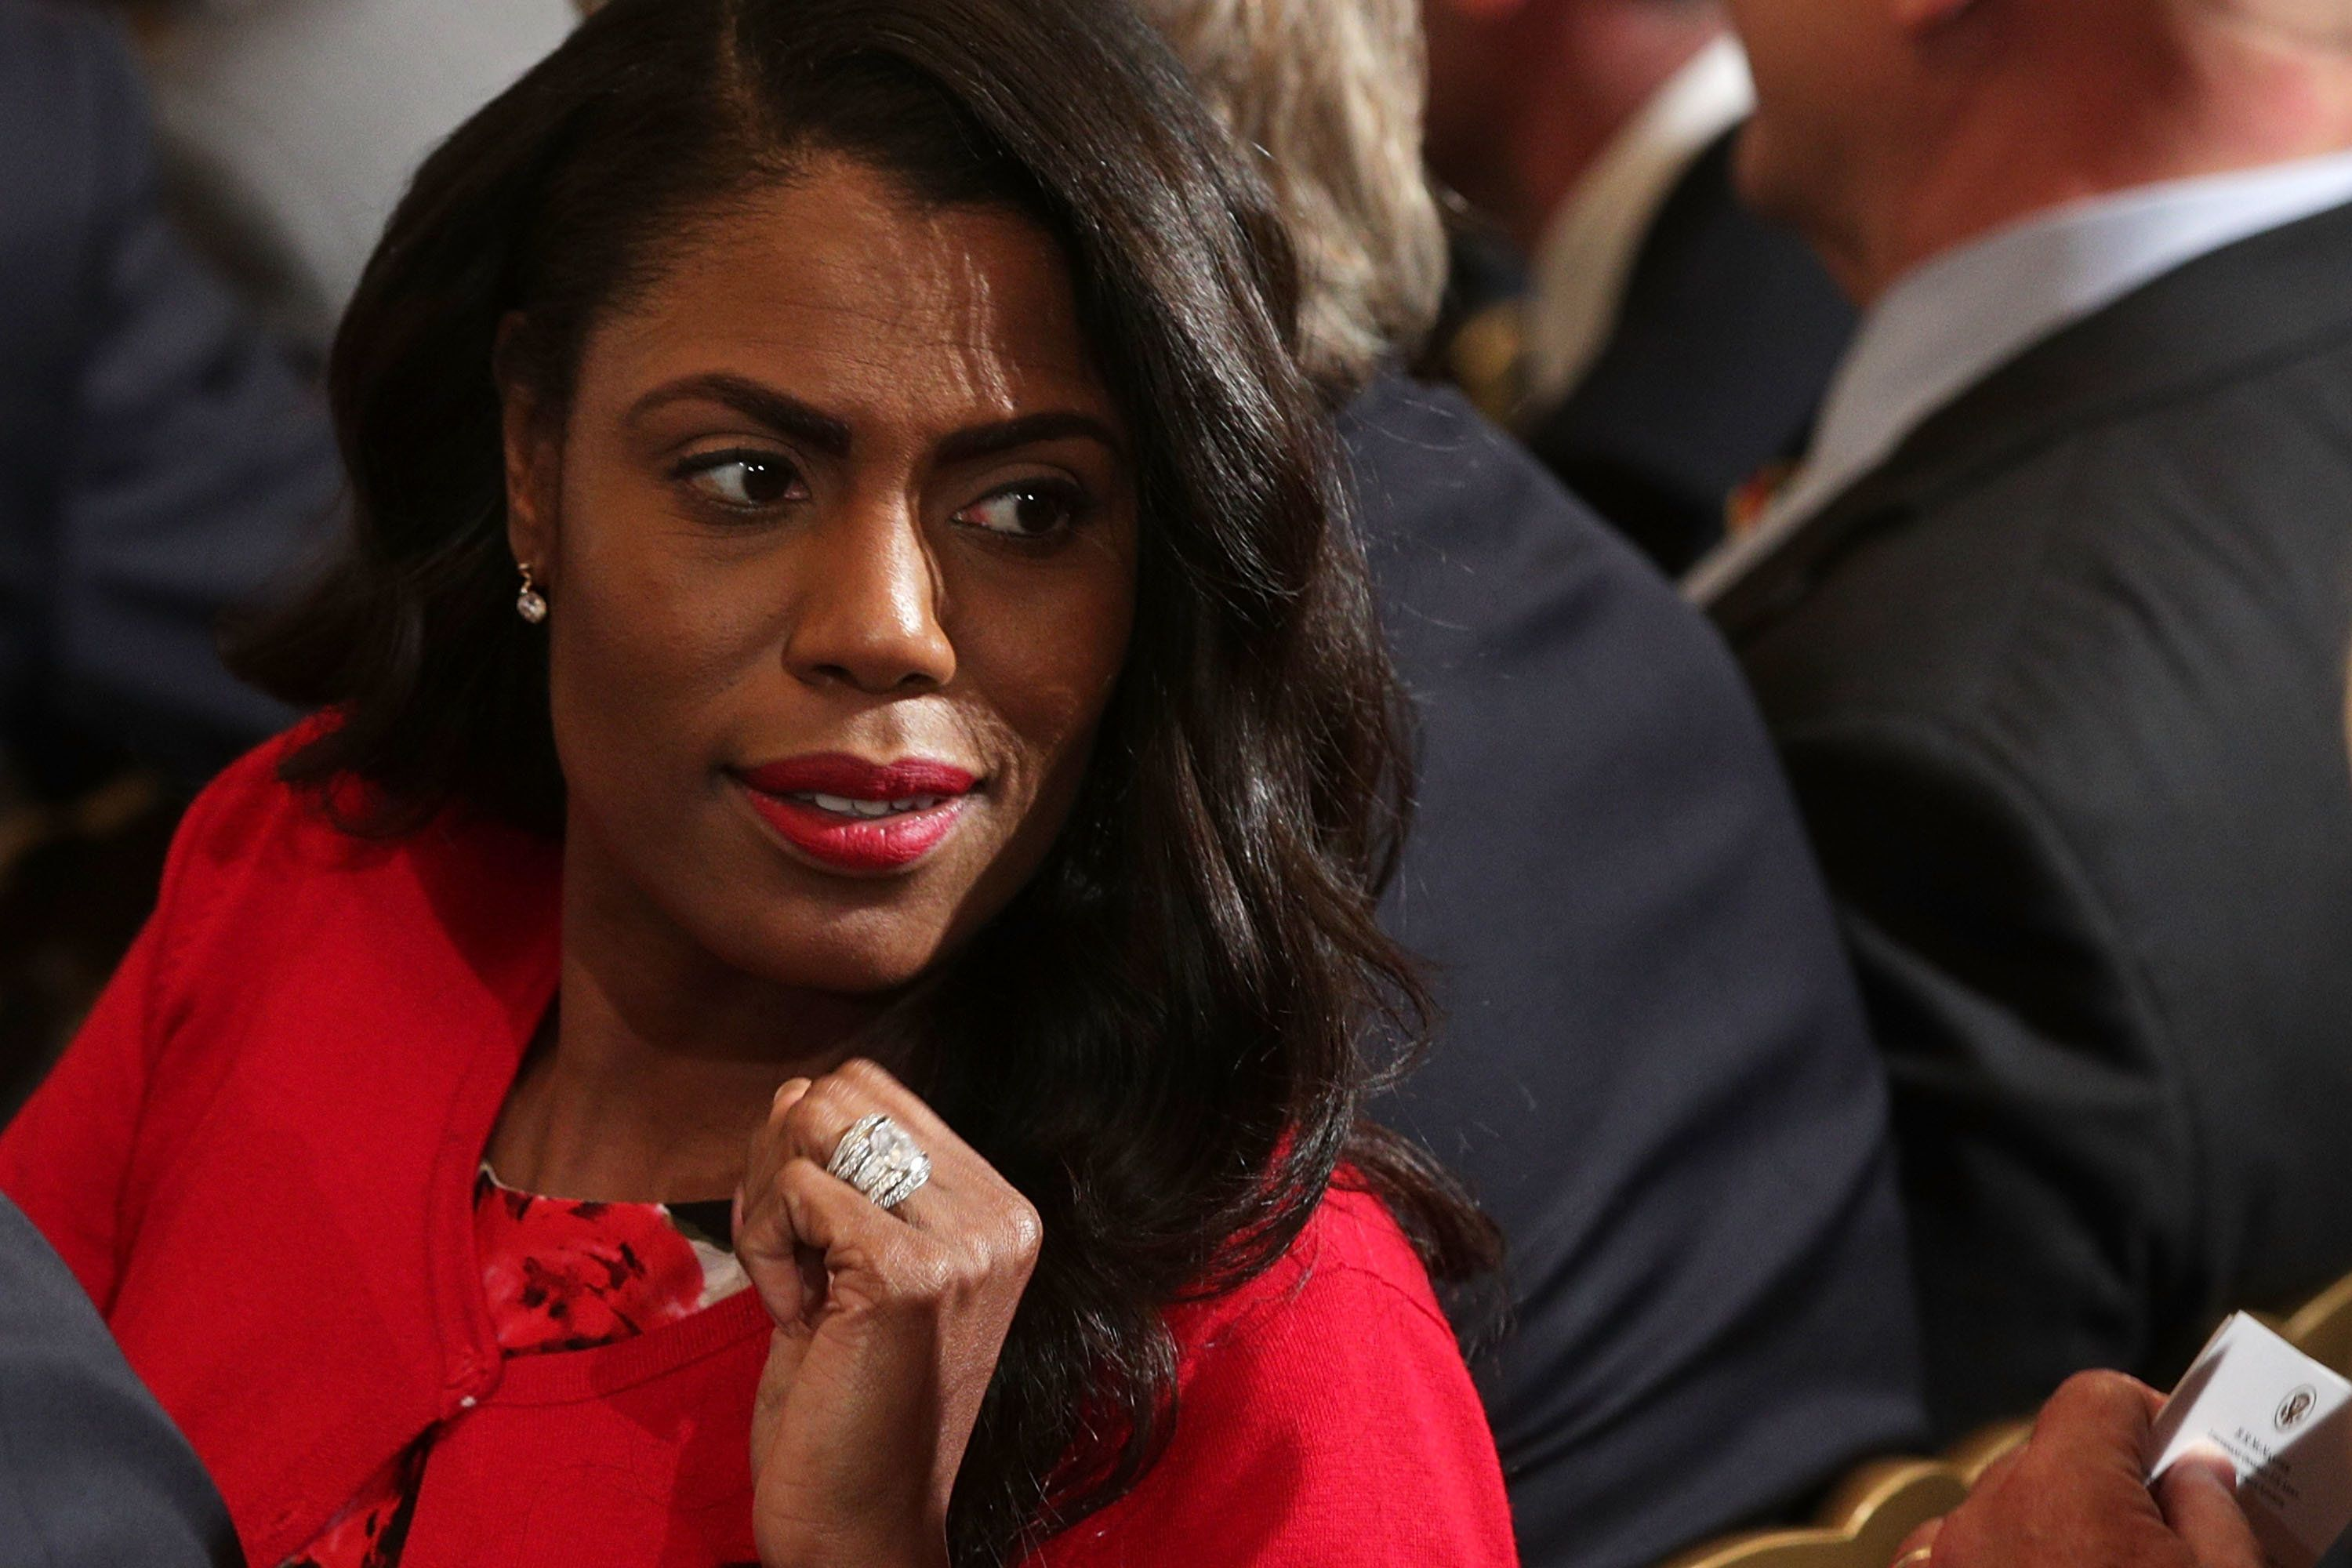 WASHINGTON, DC - OCTOBER 12:  Director of Communications for the White House Public Liaison Office Omarosa Manigault  attends a nomination announcement at the East Room of the White House October 12, 2017 in Washington, DC. President Donald Trump has nominated Nielsen to be the next homeland security secretary, the position that has left vacant by Chief of Staff John Kelly.  (Photo by Alex Wong/Getty Images)